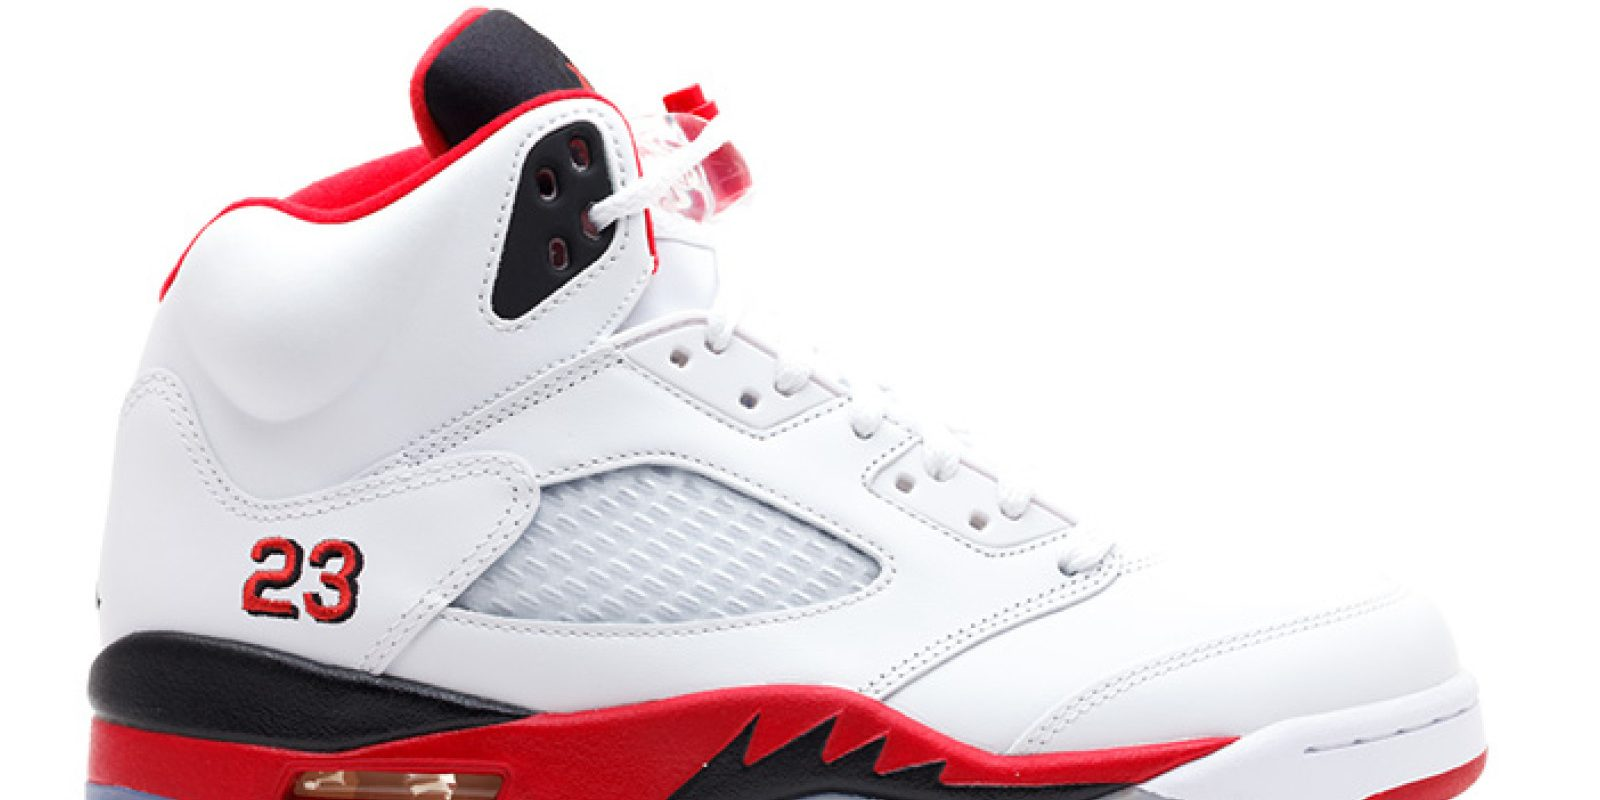 save off f4bf3 63c7f Fire Red' Air Jordan 5s Are Reportedly Returning in 2020 ...